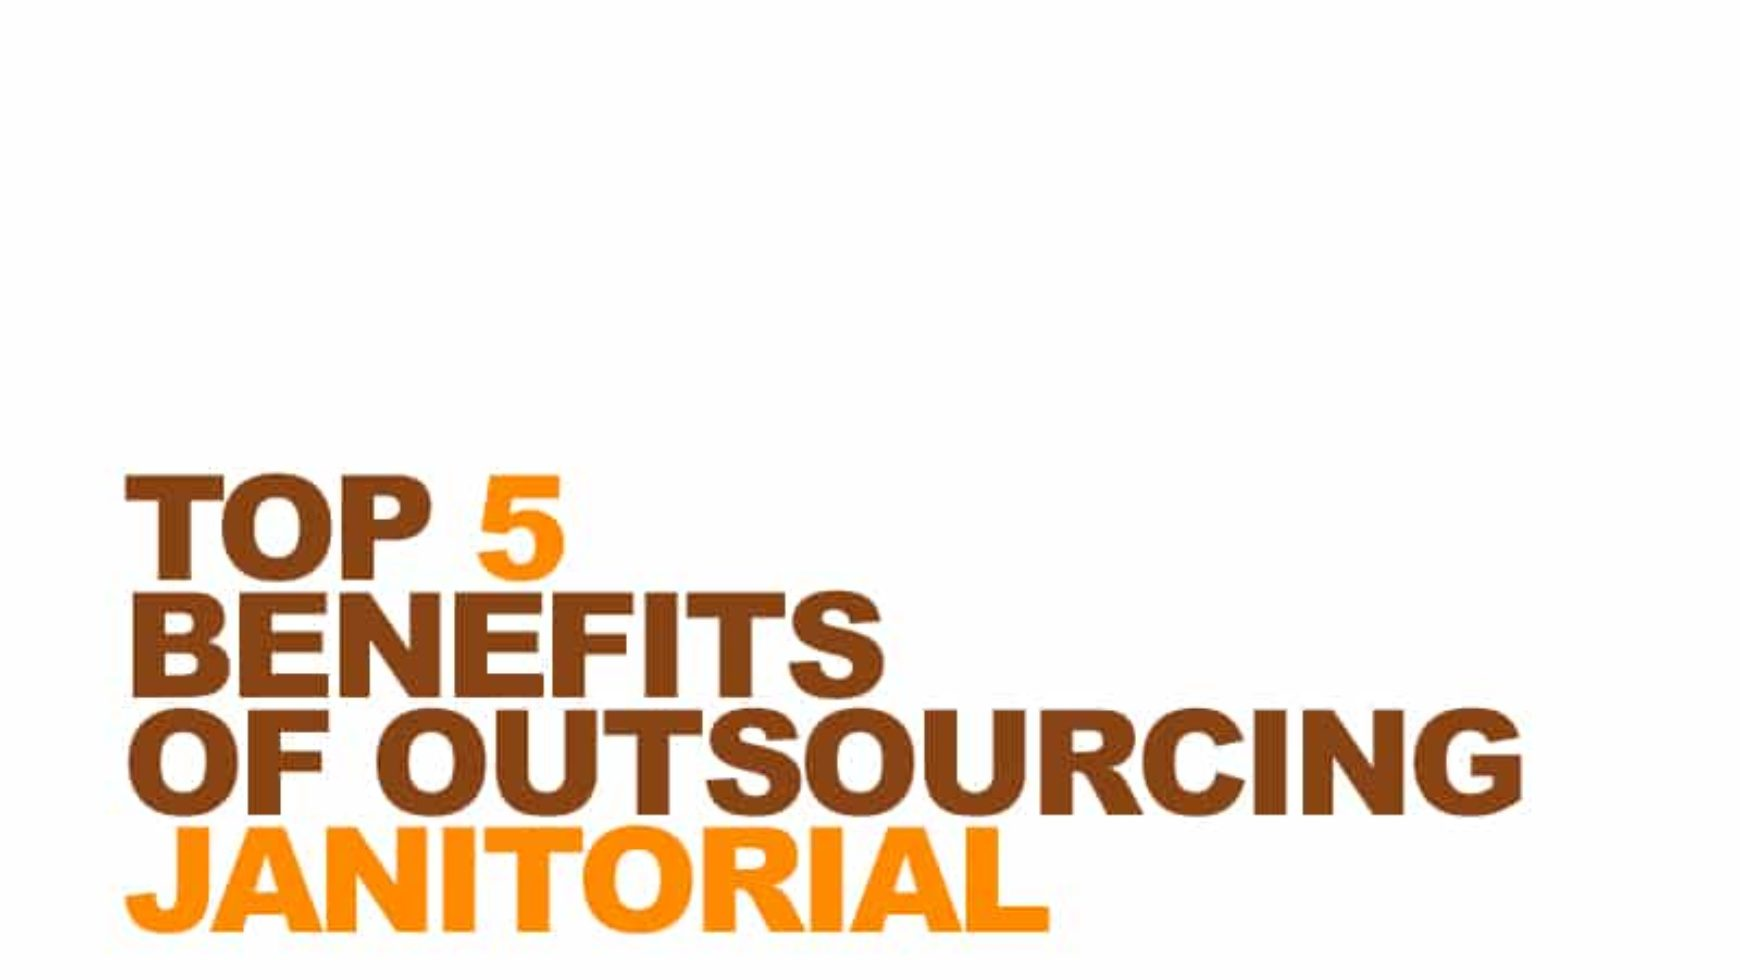 Top 5 Benefits of Outsourcing Janitorial Cleaning Services